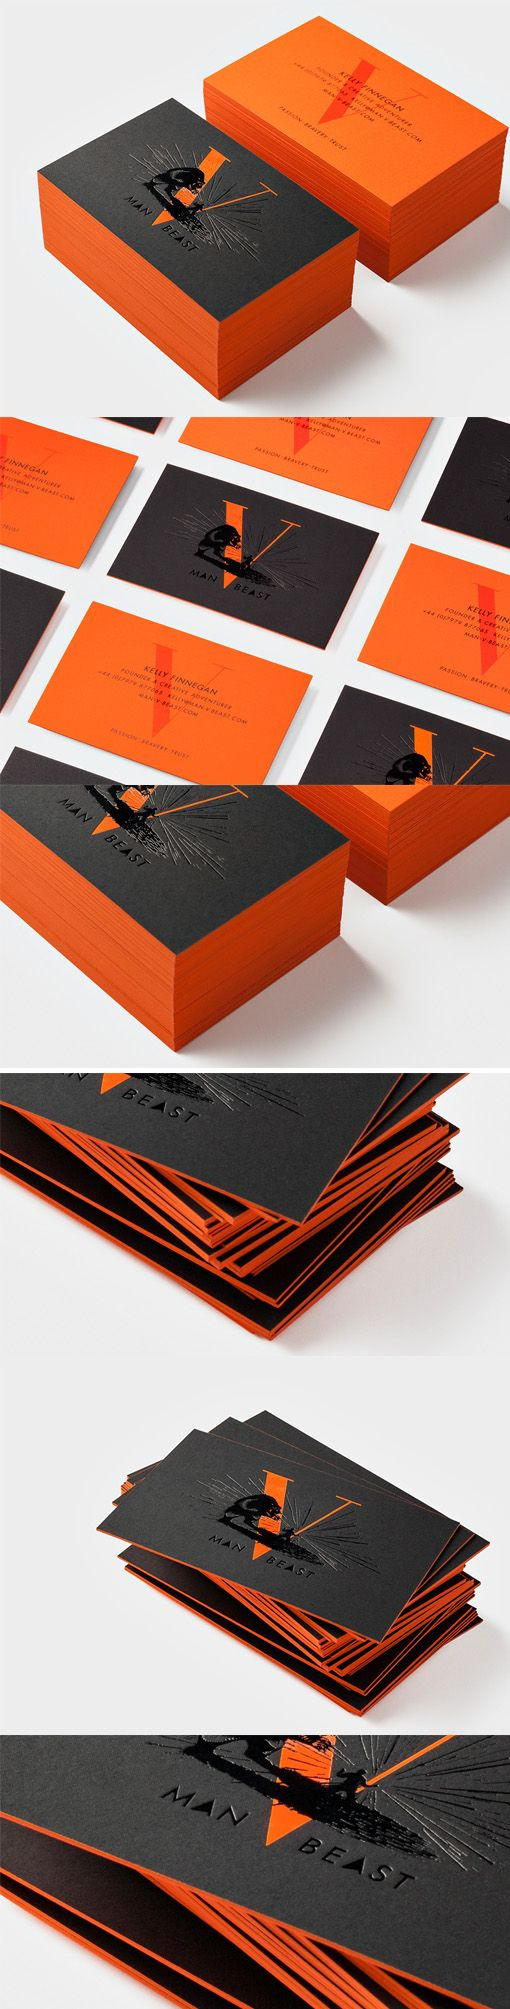 Eye Catching Colour Pop Orange And Black Hot Foiled Business Card Cool Business Cards Business Card Maker Business Card Design